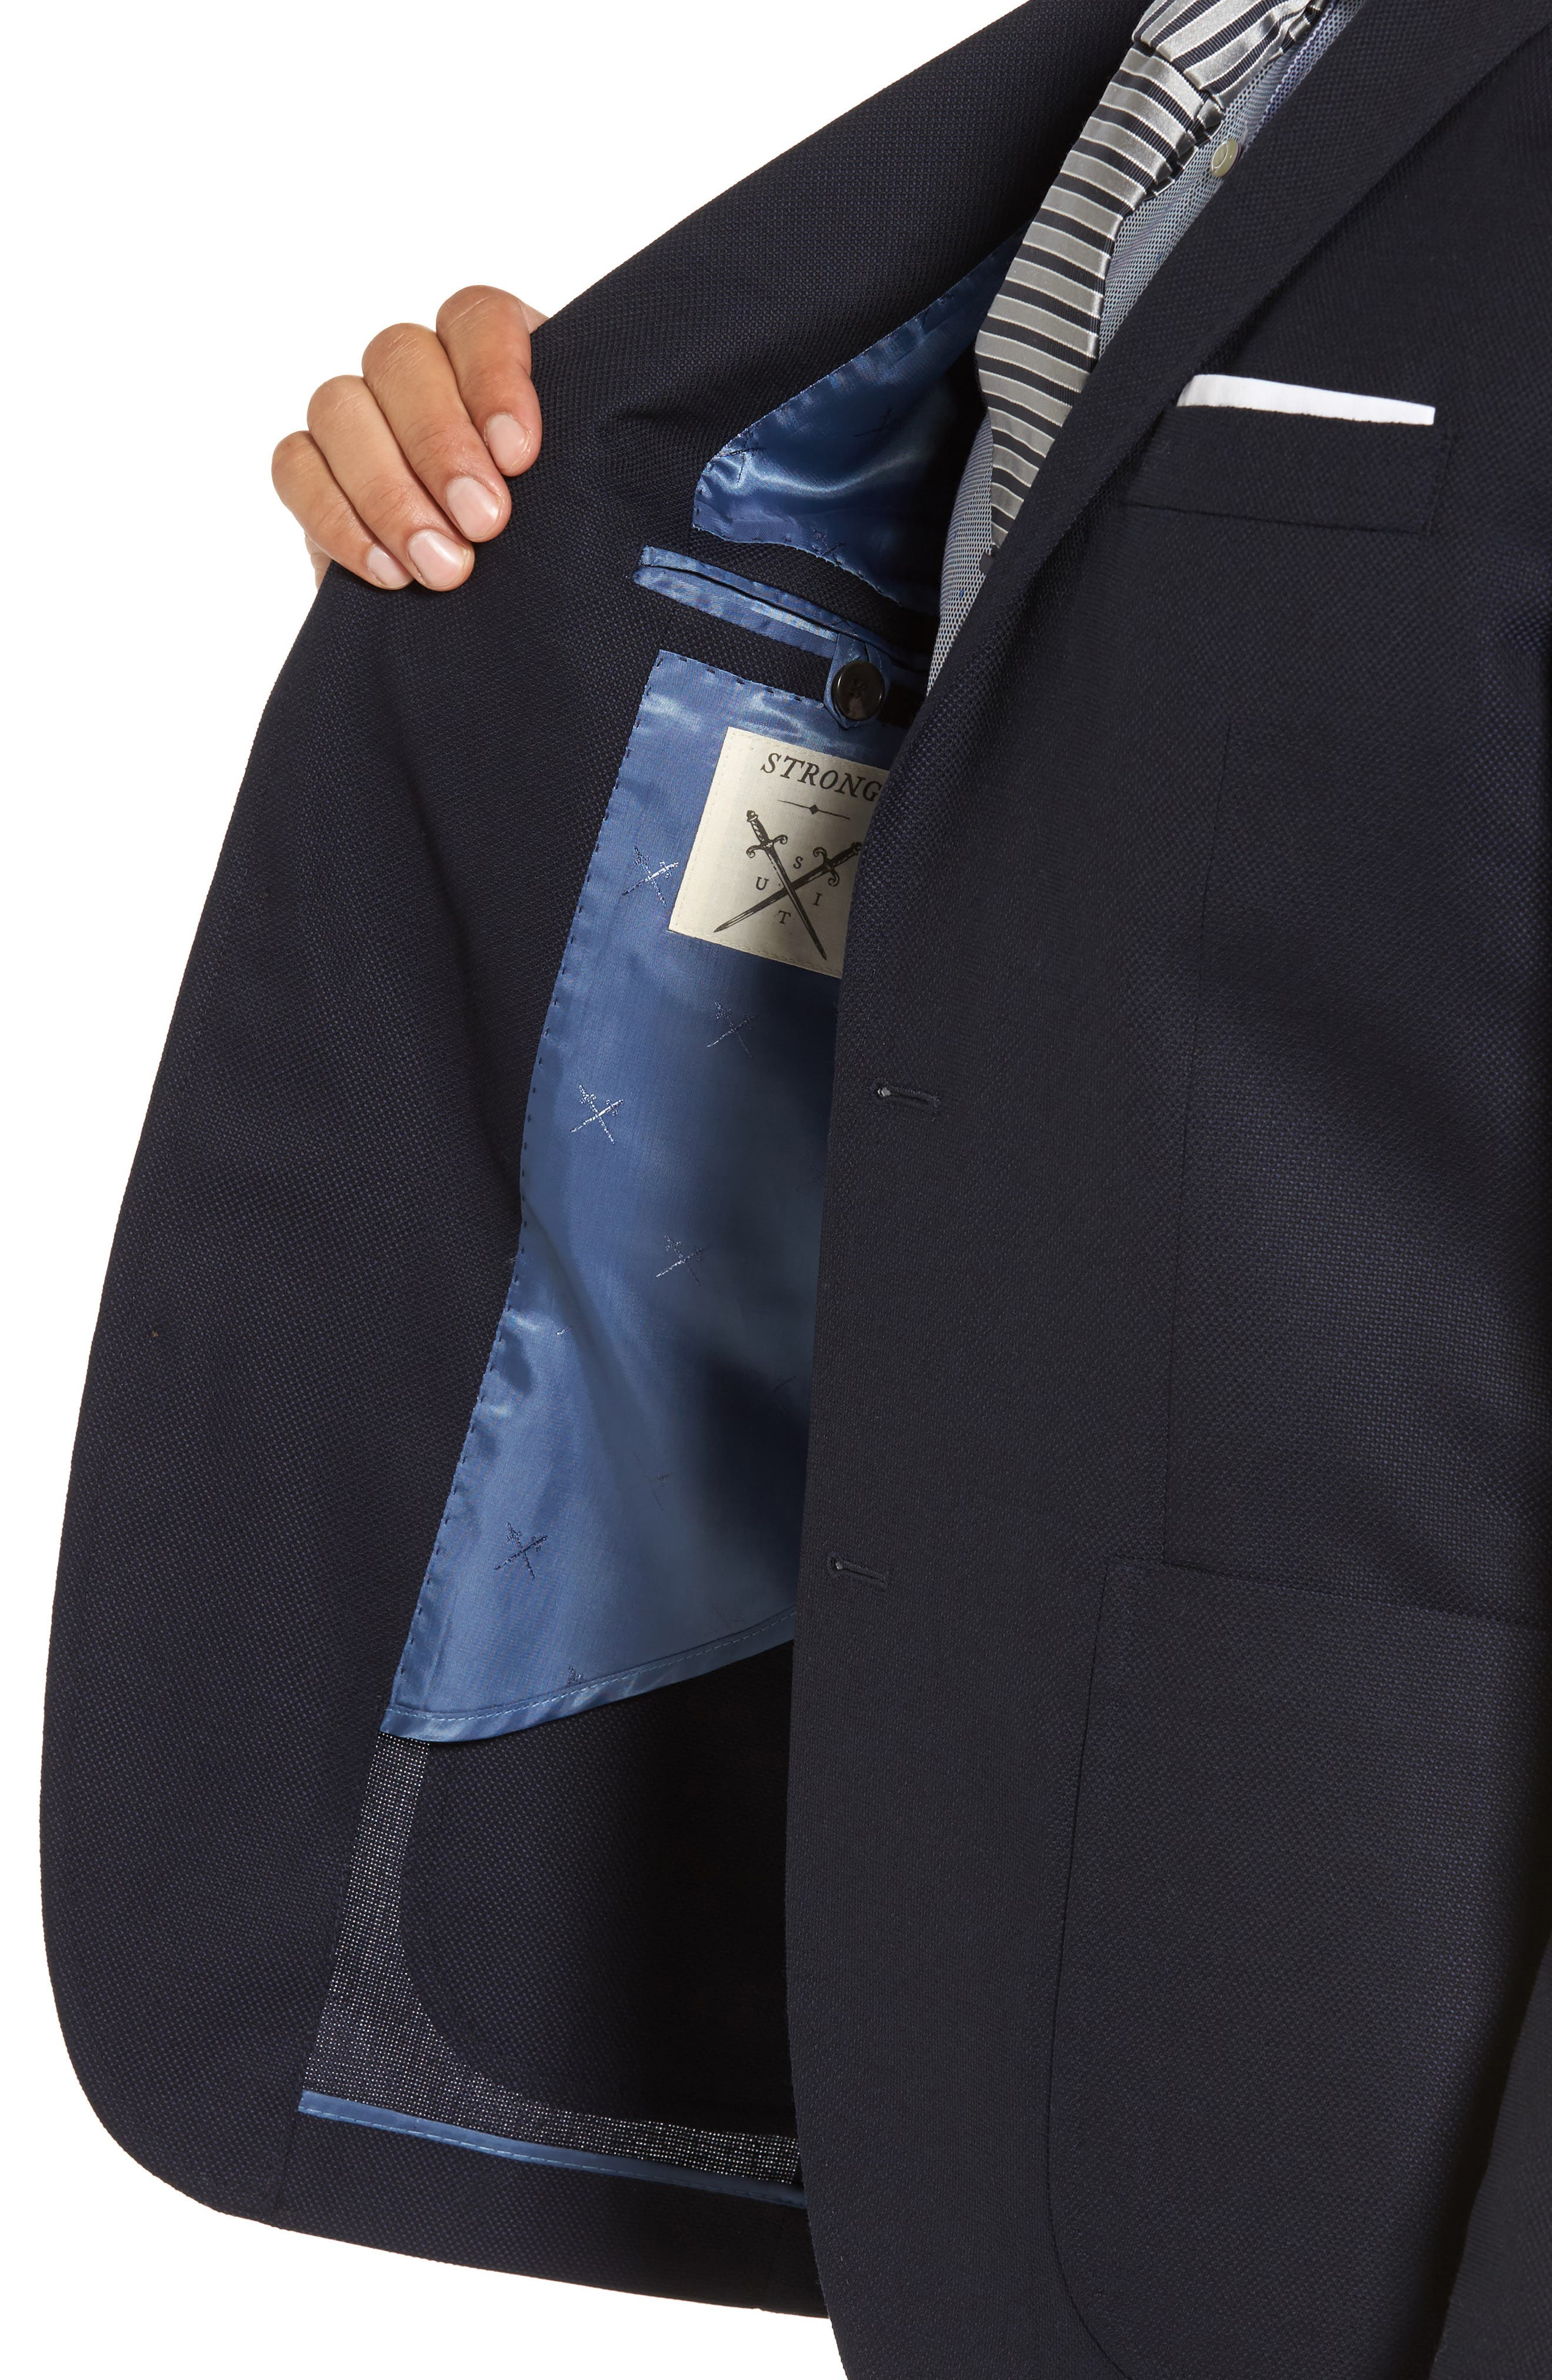 Vantage Trim Fit Wool Blazer,                             Alternate thumbnail 4, color,                             Navy Hopsack